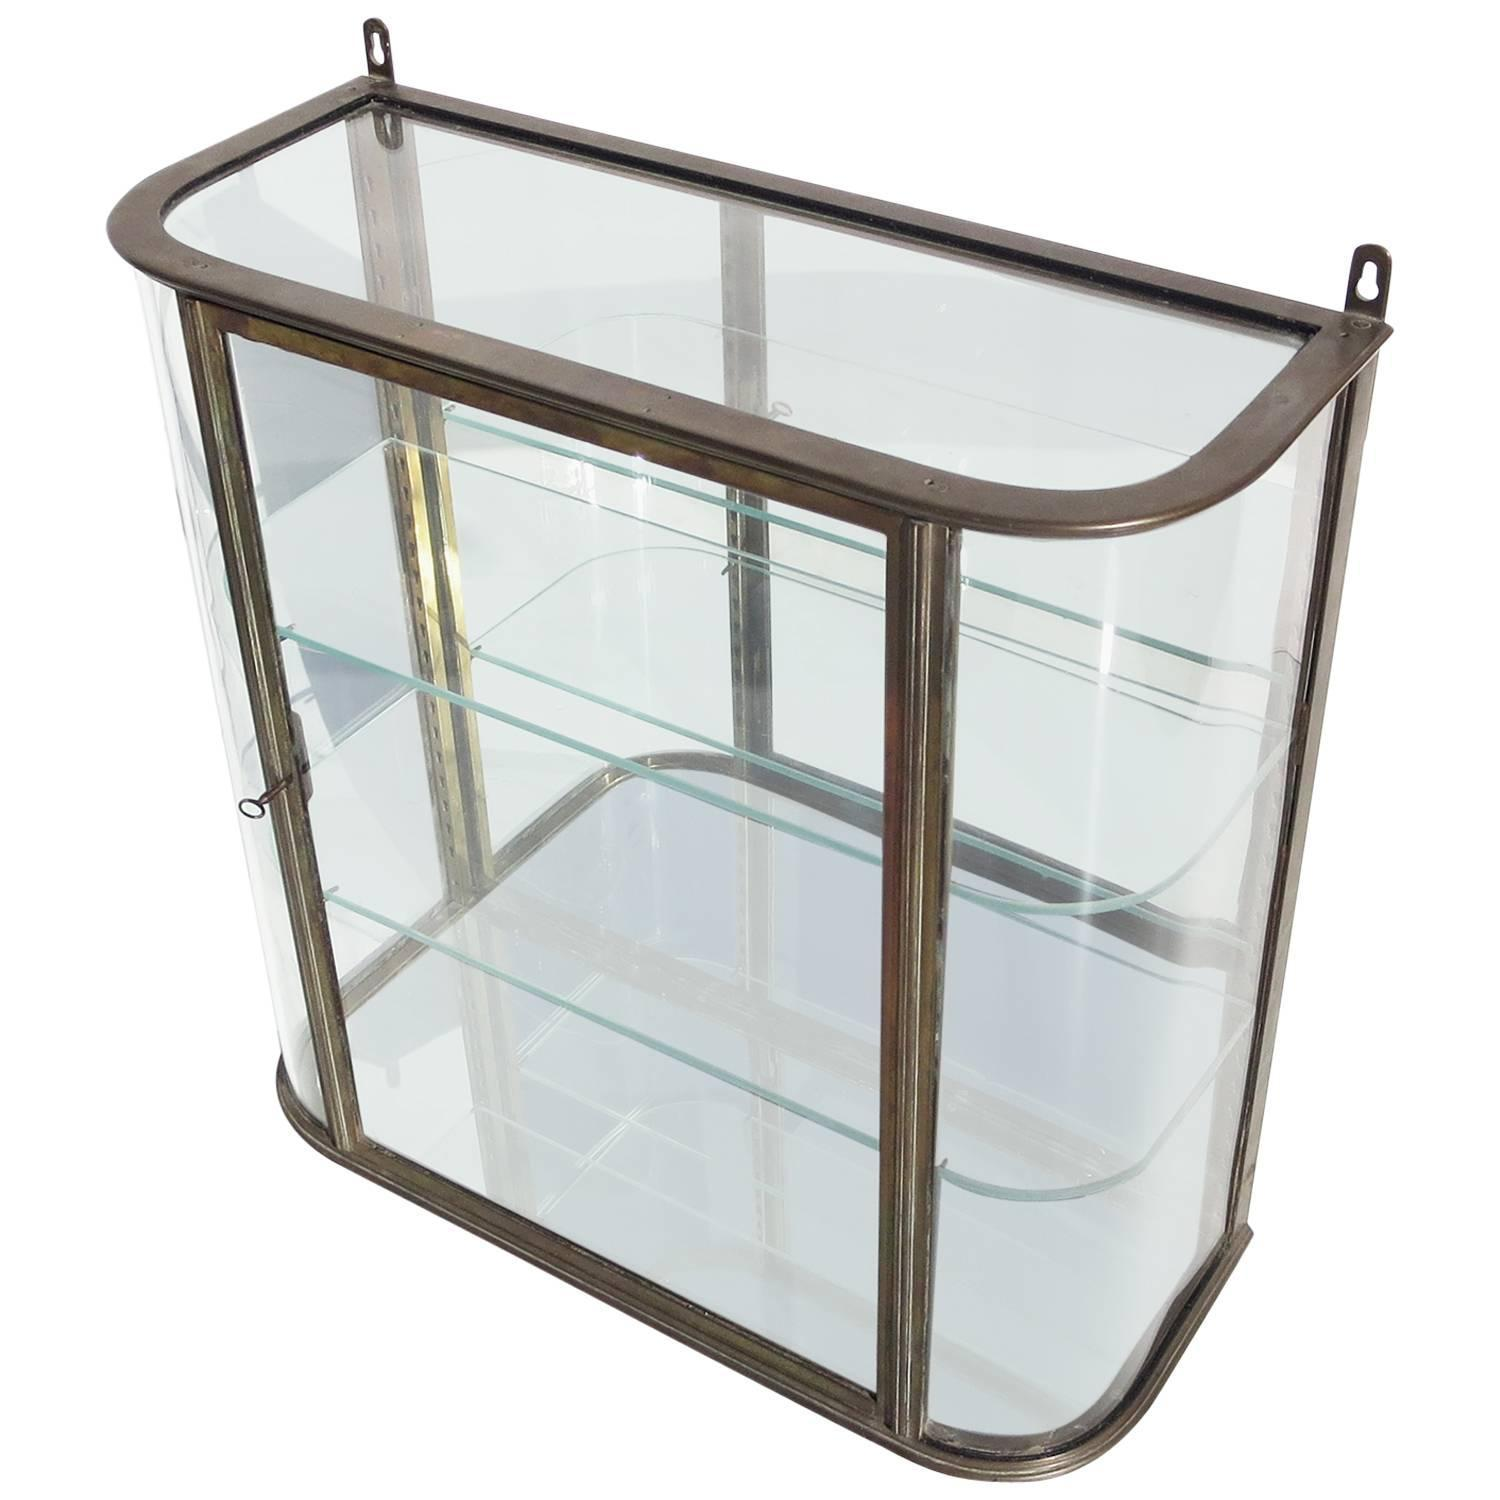 Bronze and curved glass wall mounted vitrine at 1stdibs for Curved glass wall